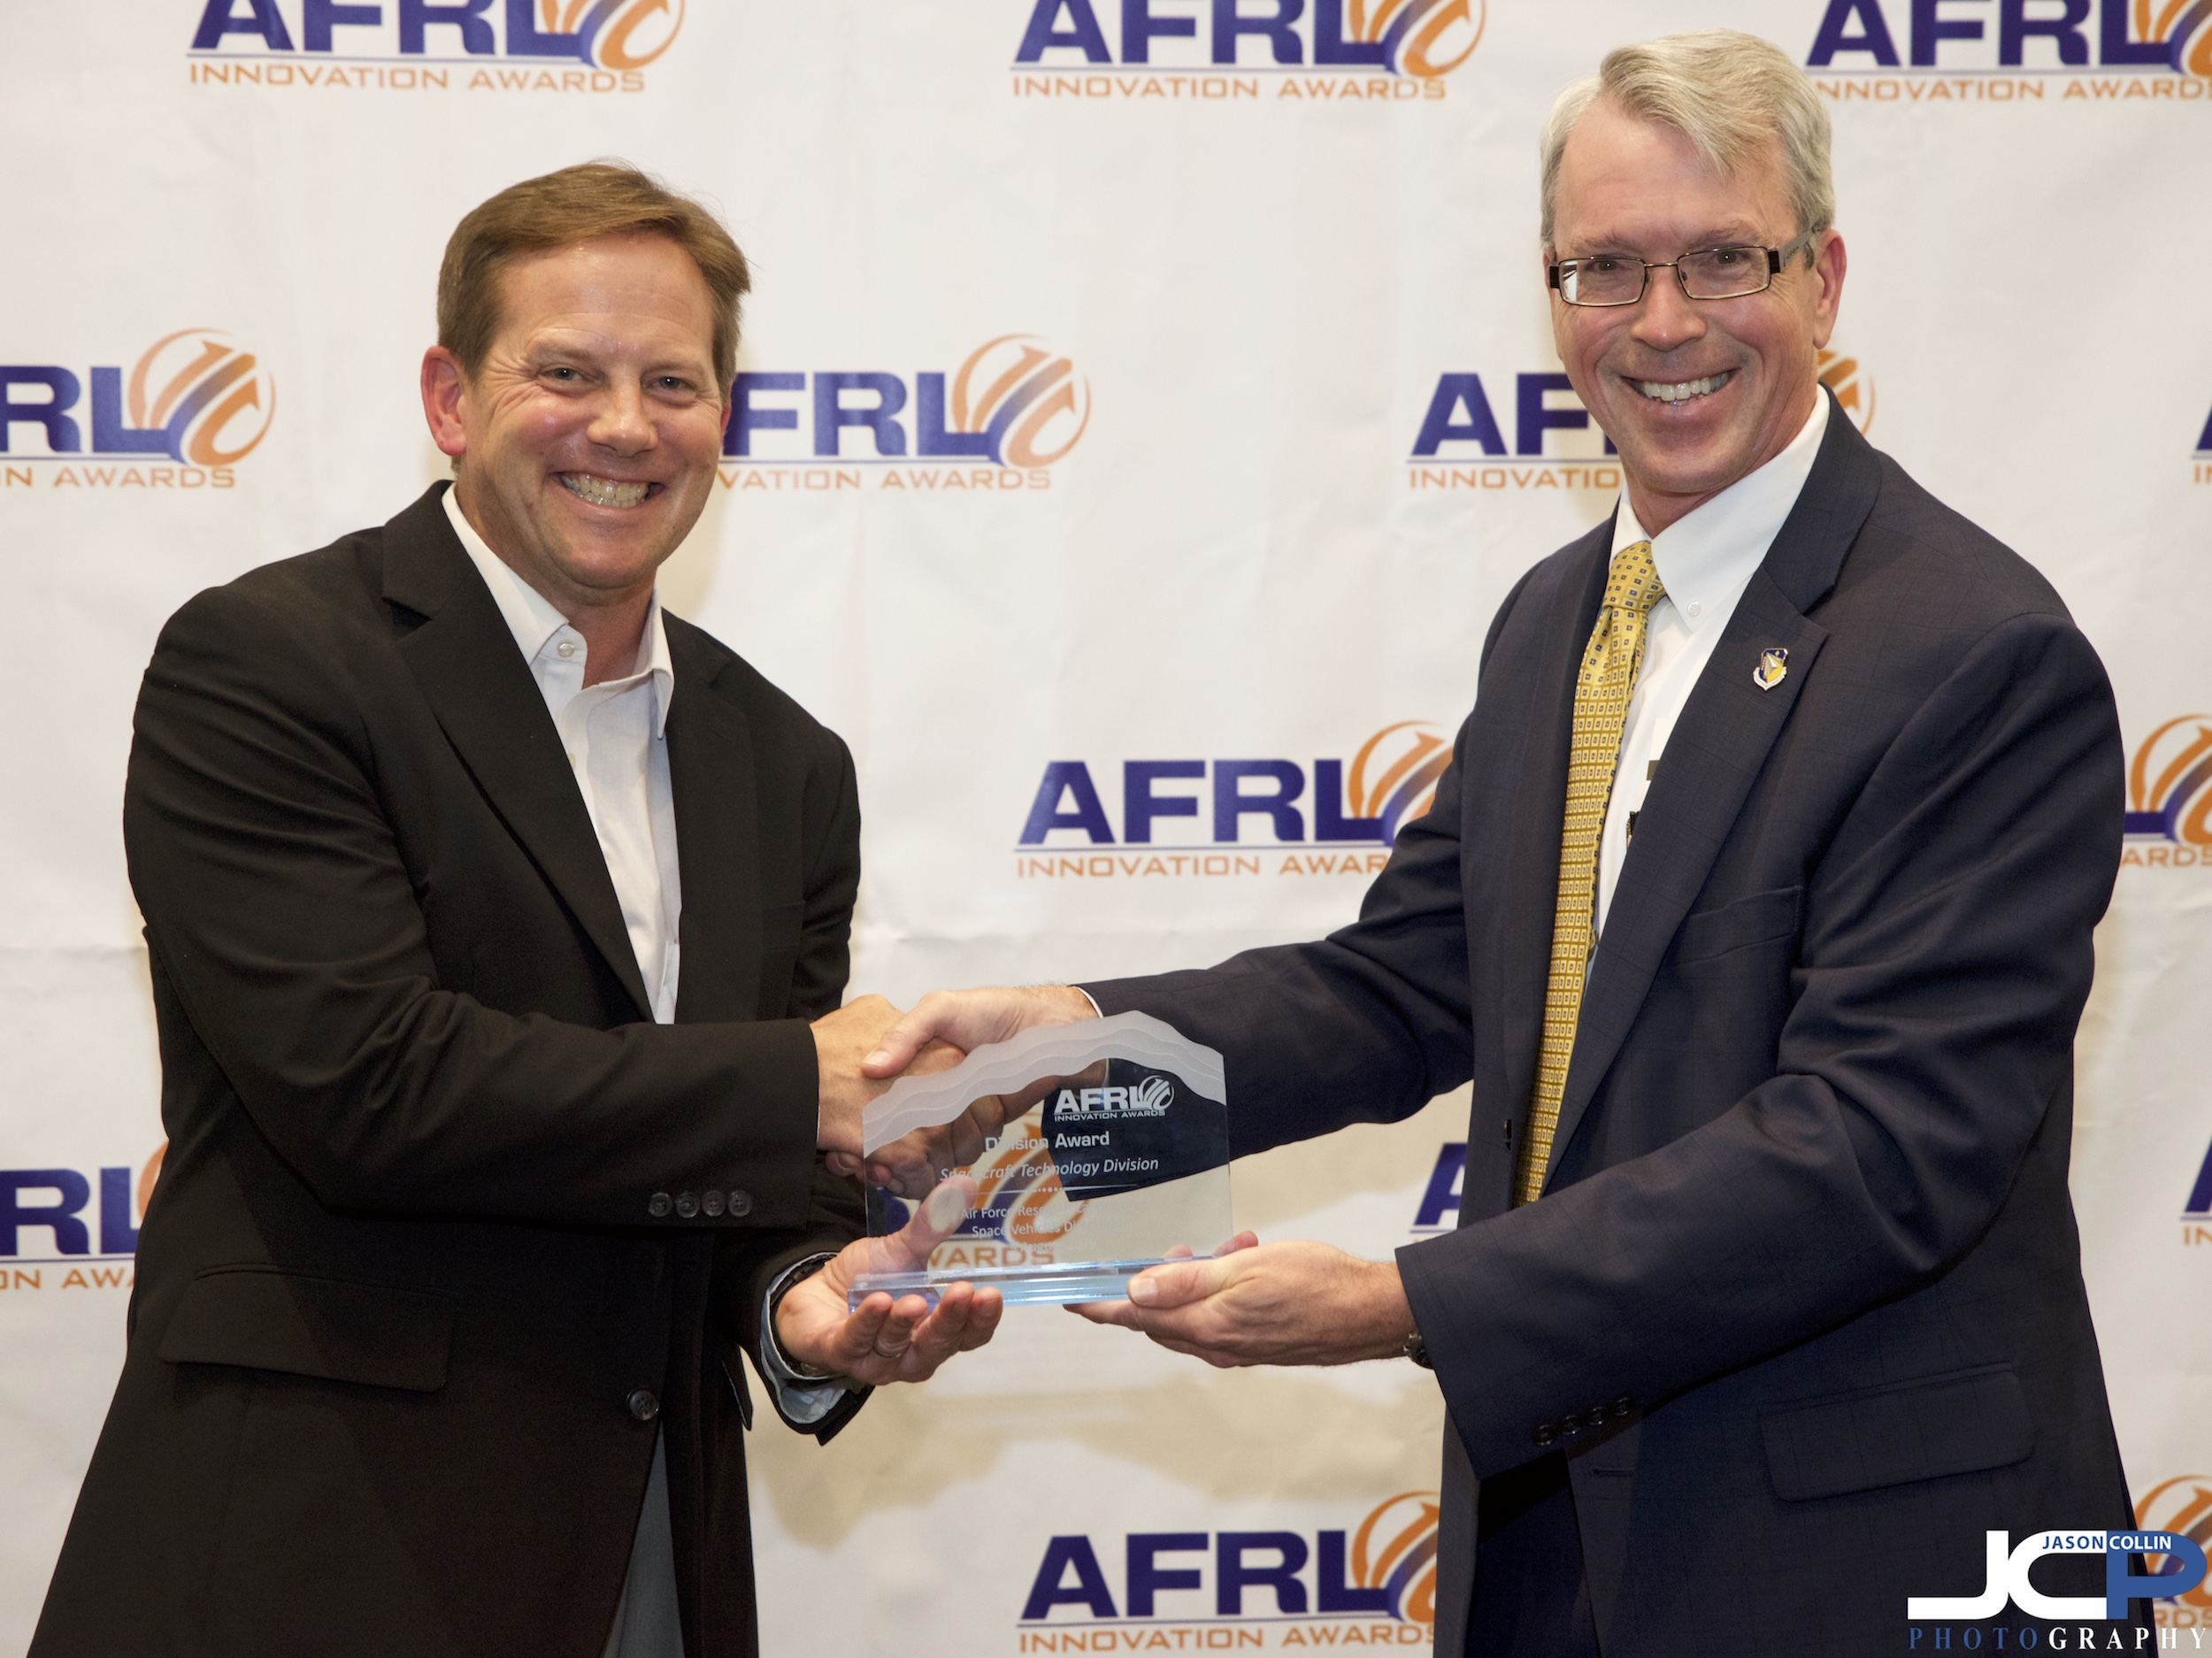 Awards photography for AFRL 2019 in Albuquerque, New Mexico